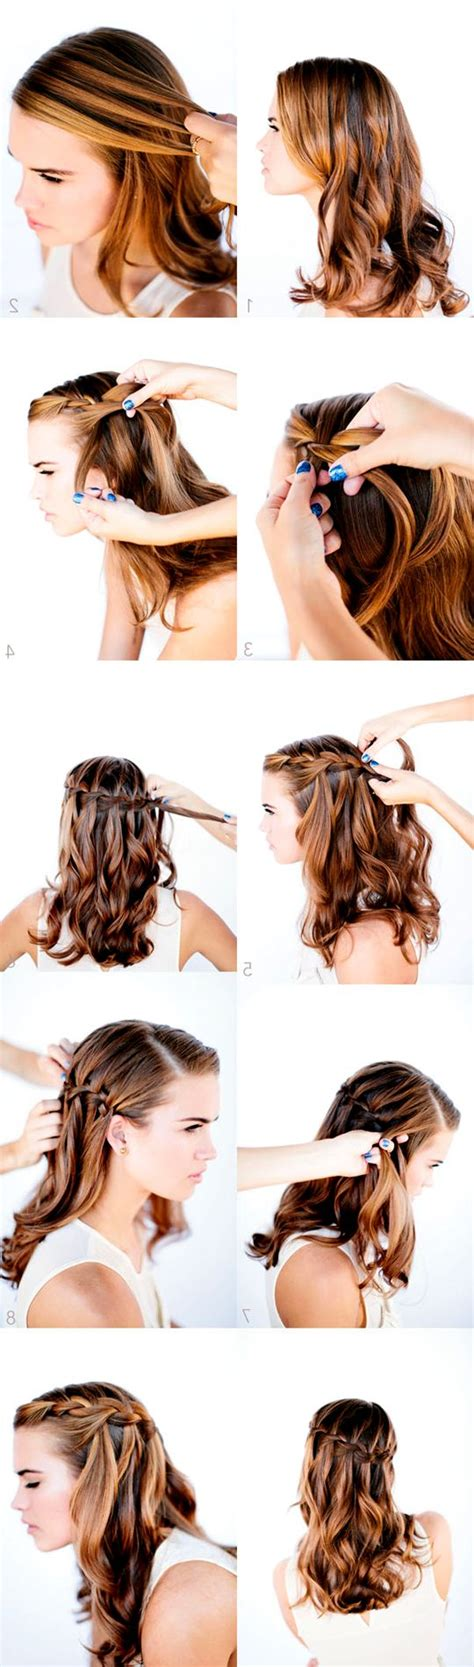 25 best ideas about school picture hairstyles on braid styles step by step